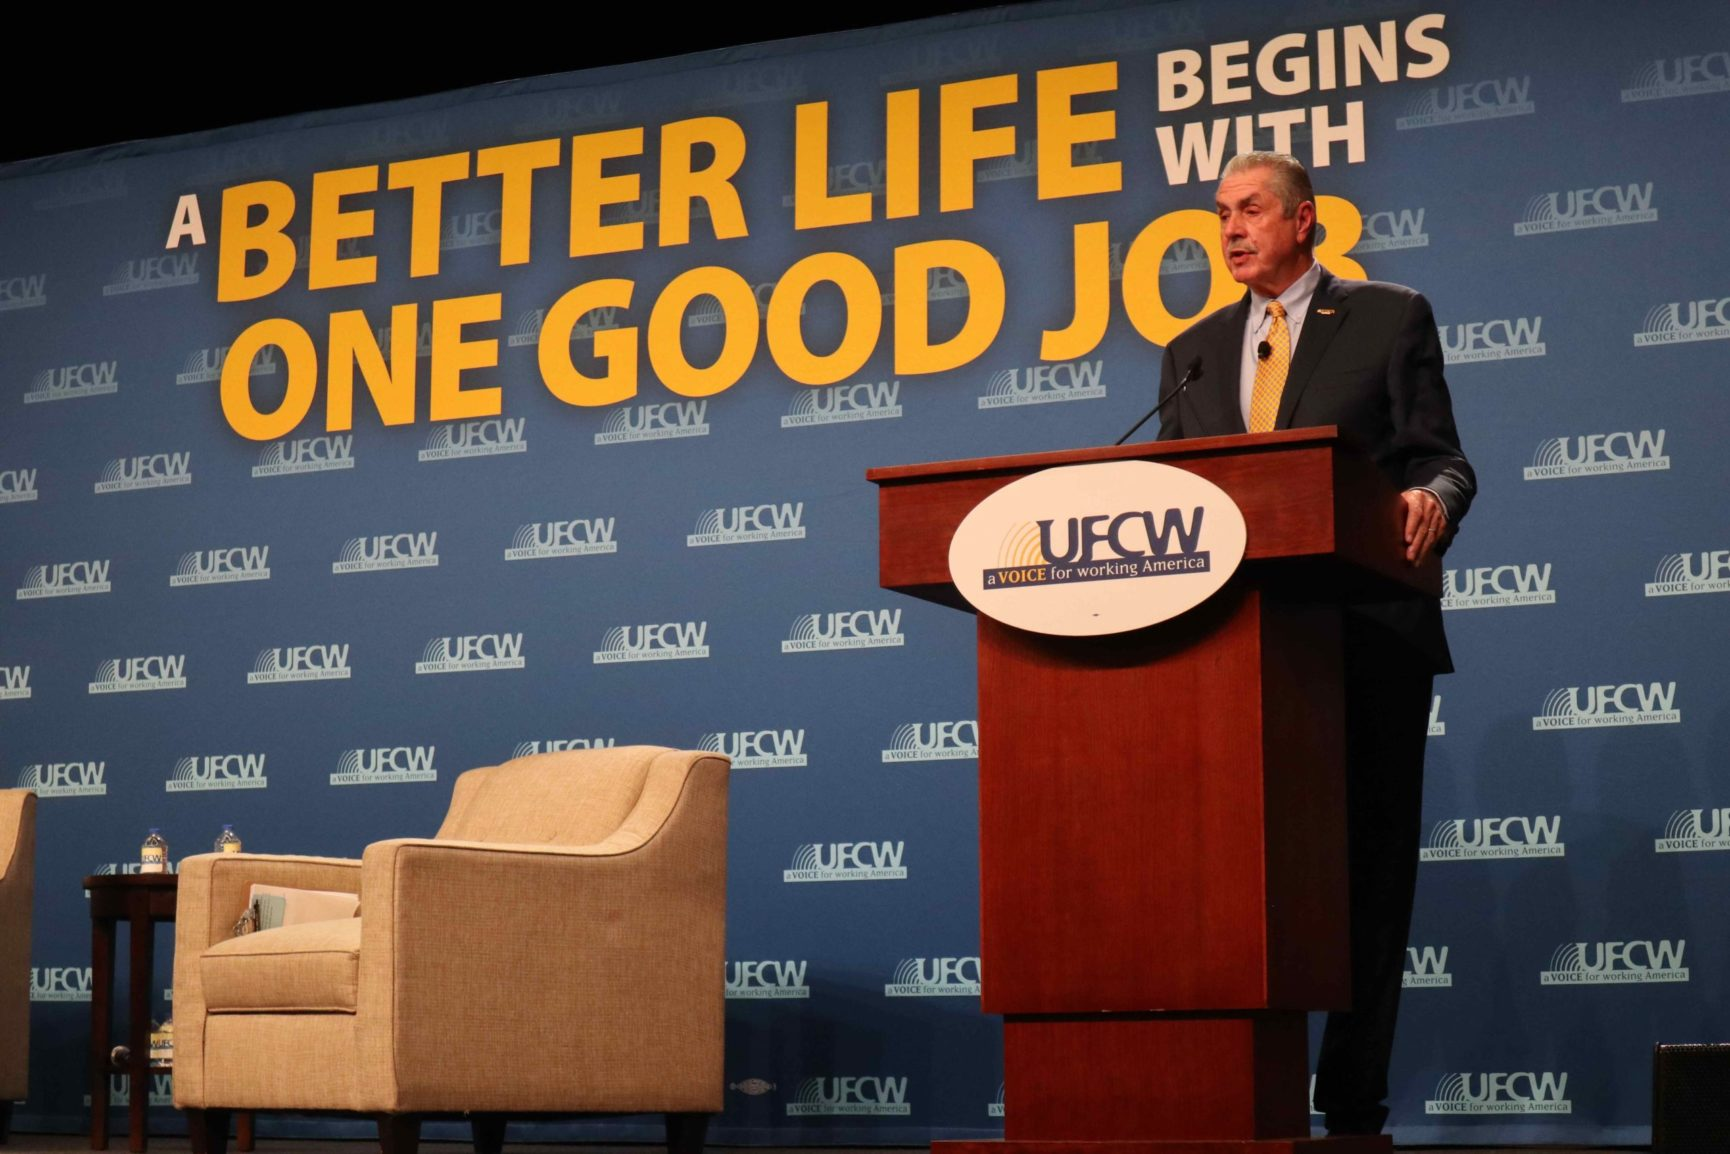 President Marc Perrone at the UFCW Presidential Forum 2020